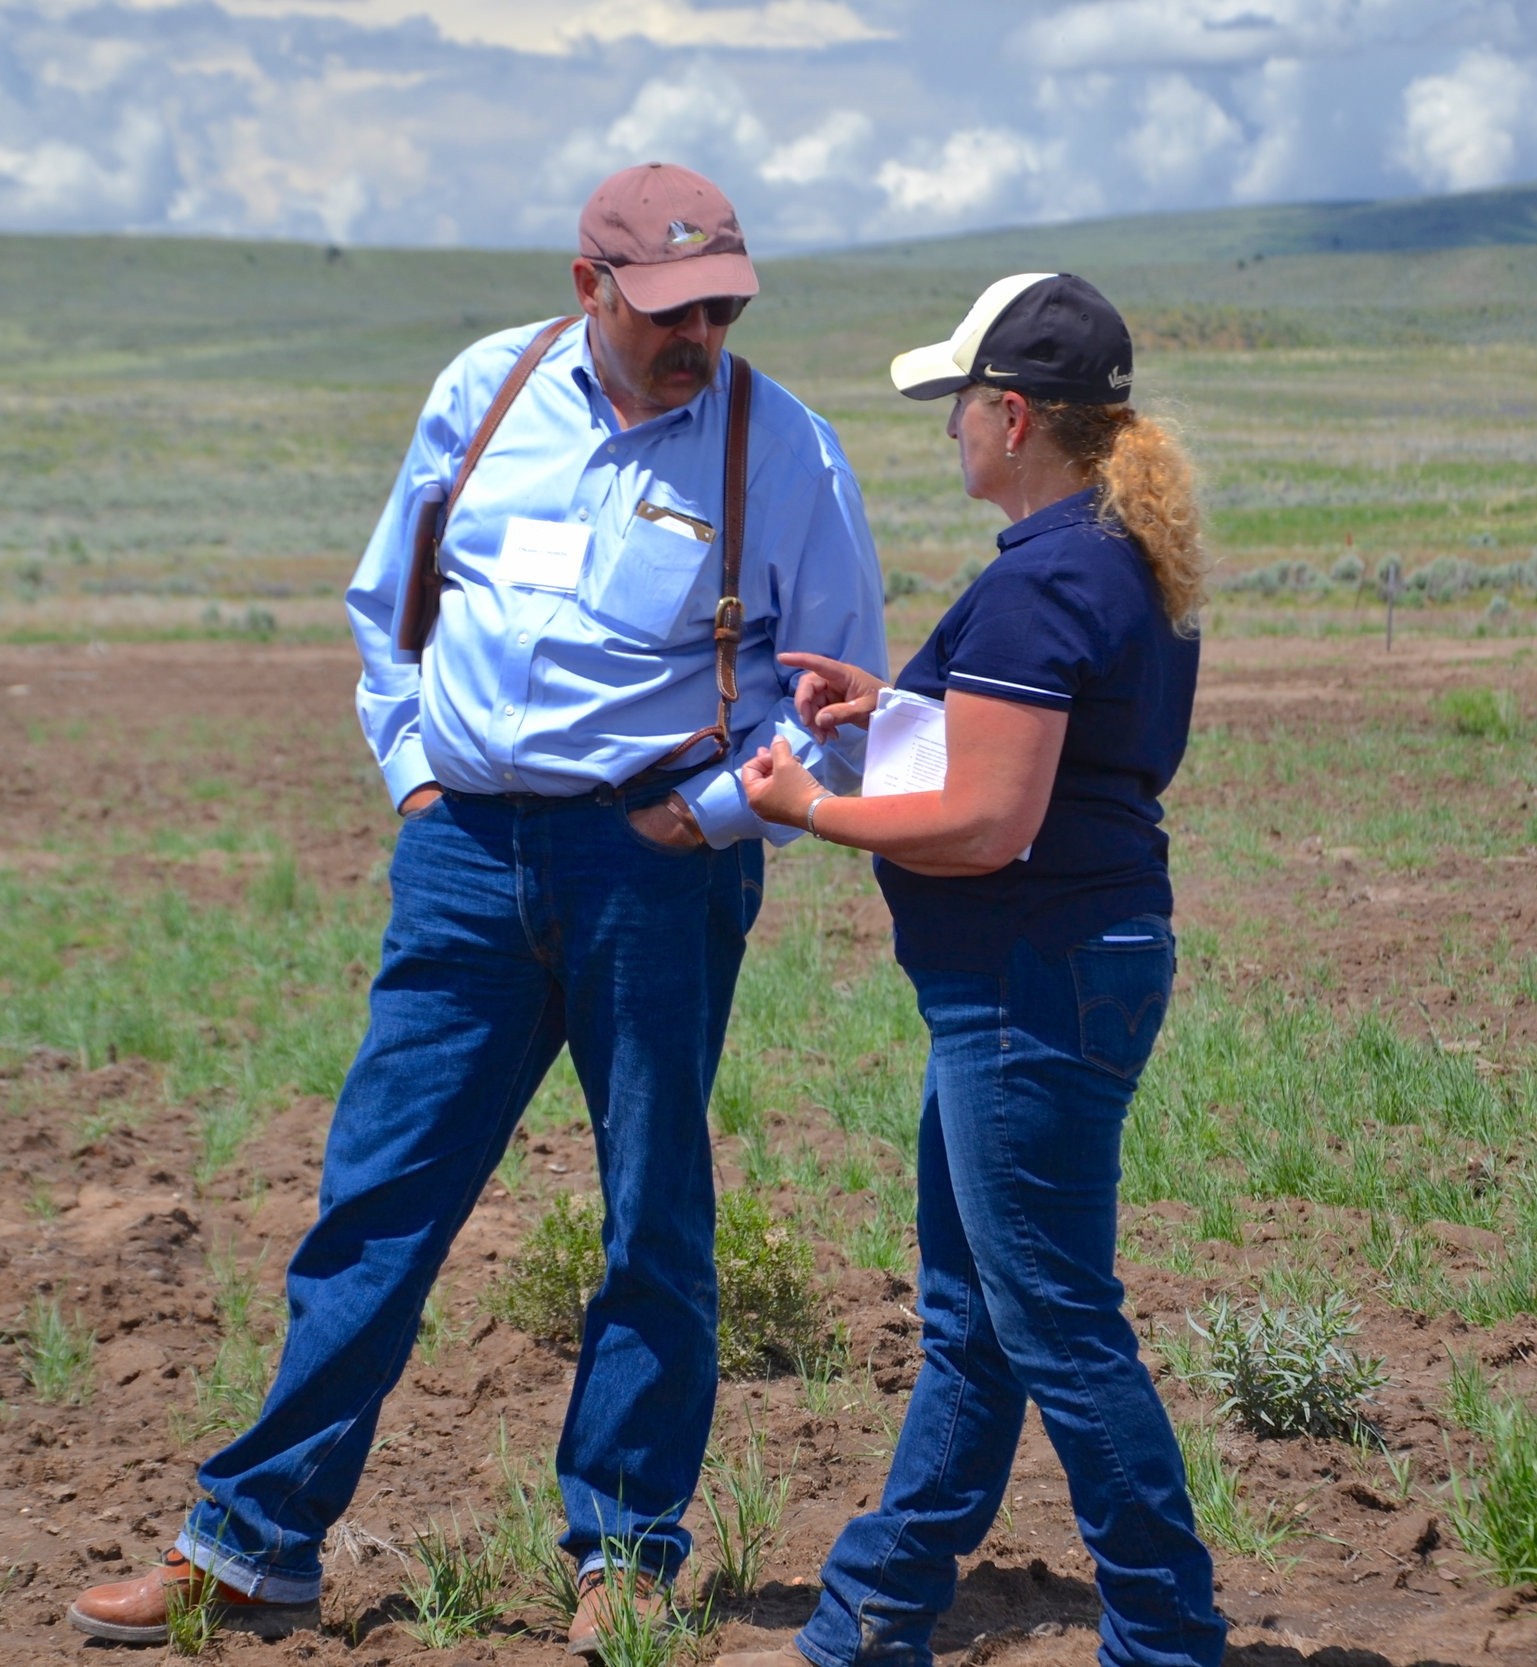 Duane Coombs, Outcome-based Grazing Program Coordinator, and Brenda Richards, IRCP Coordinator, talk about fire and invasives while on a tour of the Soda Fire burn scar.